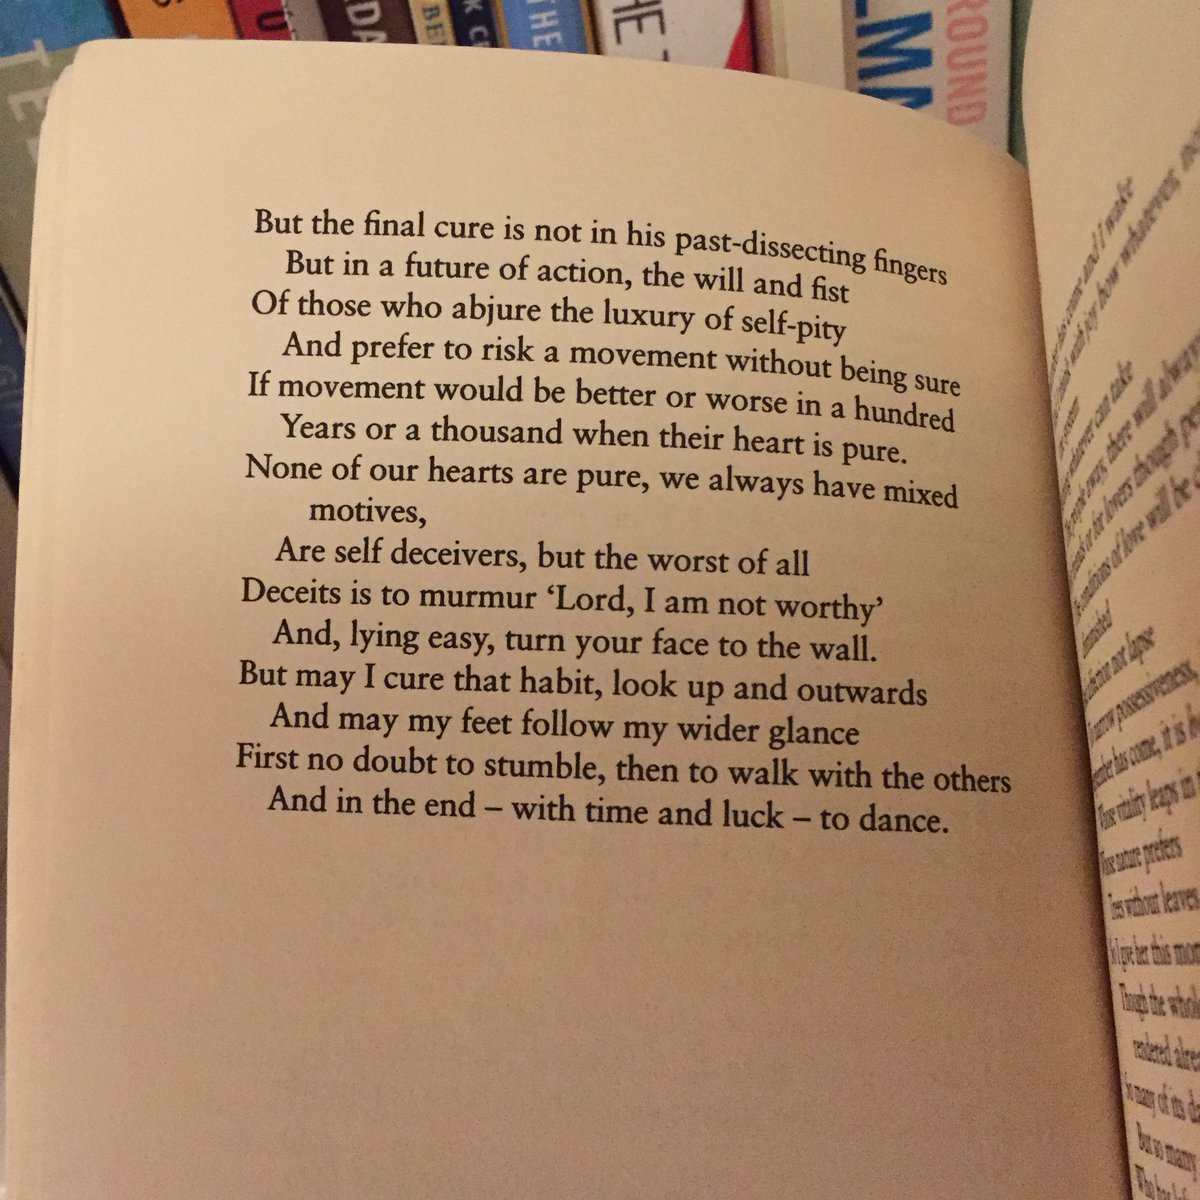 A house full of amazing poetry, yet I always return to Louis MacNeice's Autumn Journal for wisdom. #WorldPoetryDay https://t.co/OhHLnojgpu